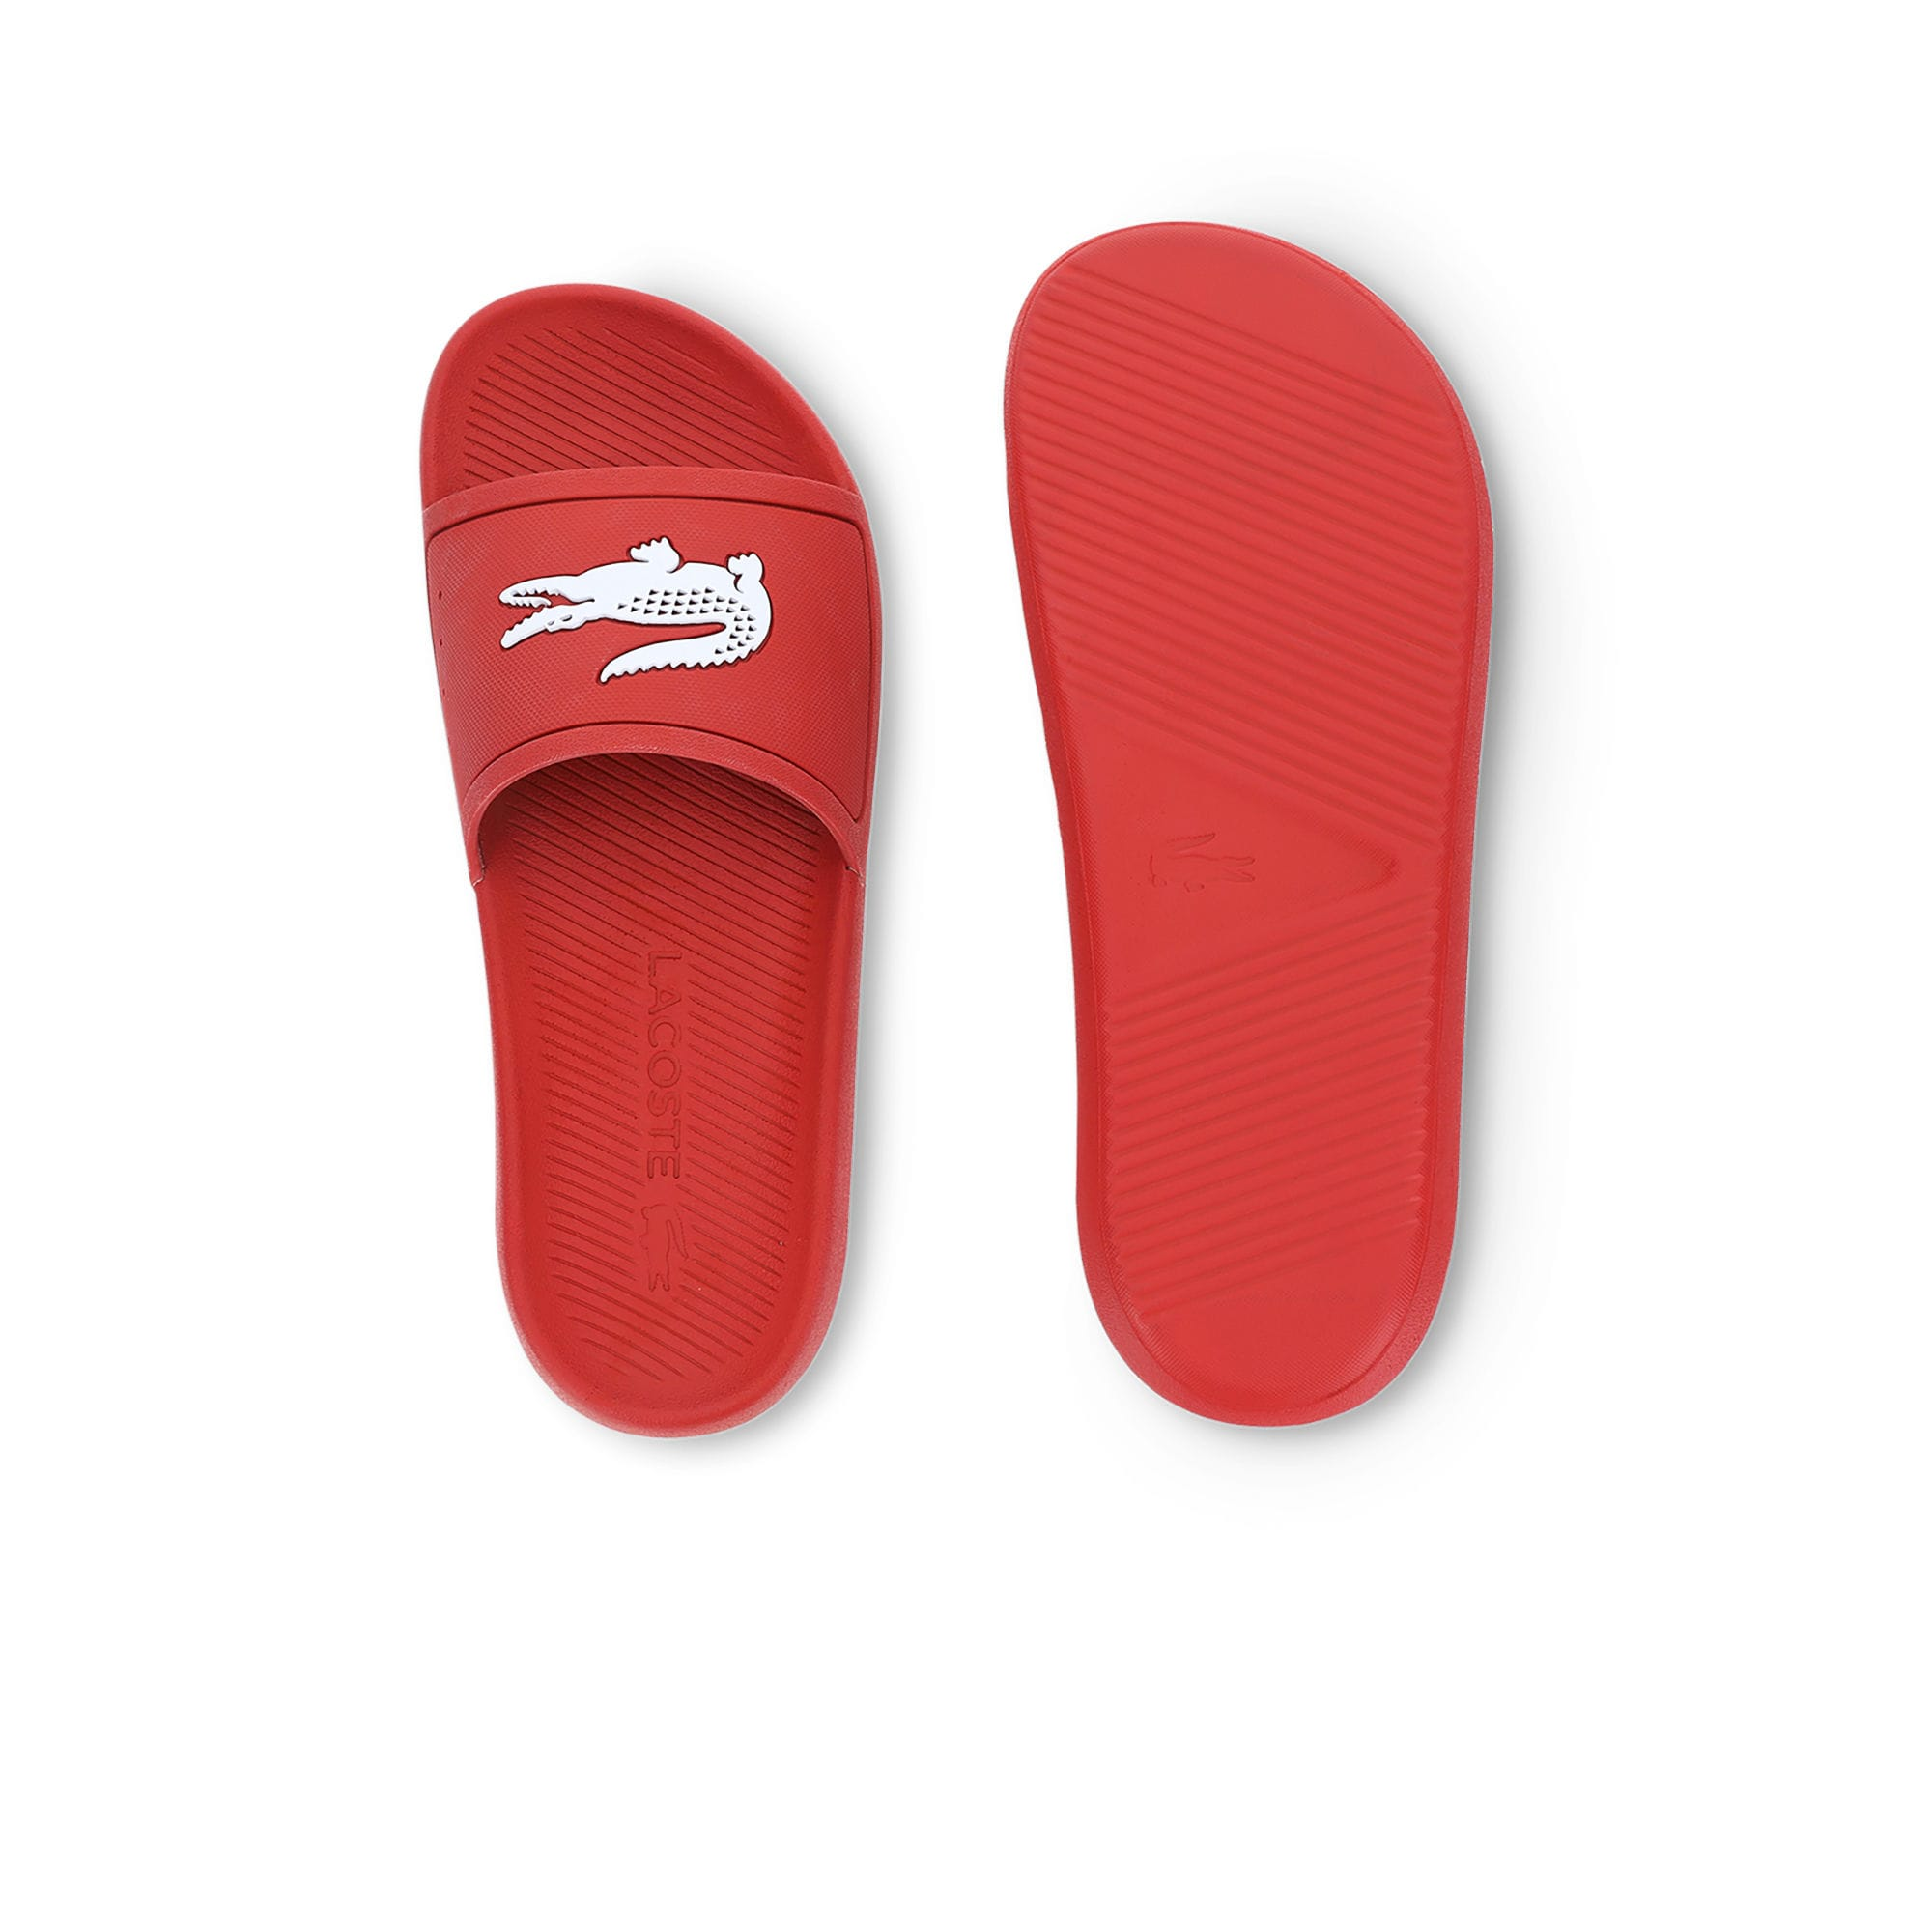 Men's Croco Slide 119 Rubber Slides (Red/White)